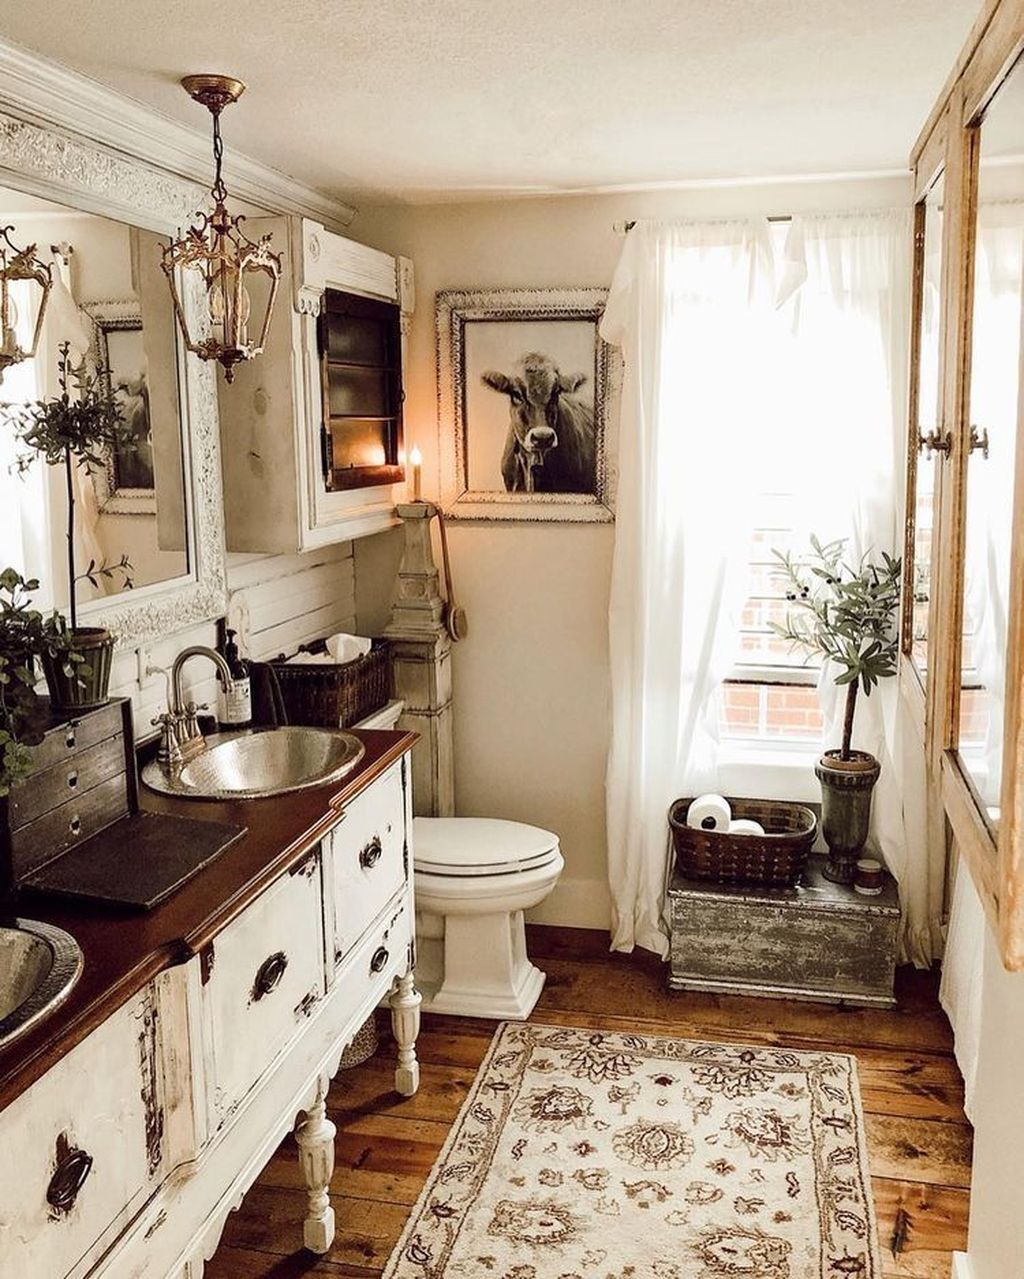 43 Charming French Country Bathroom Design And Decor Ideas On A Budget Designs